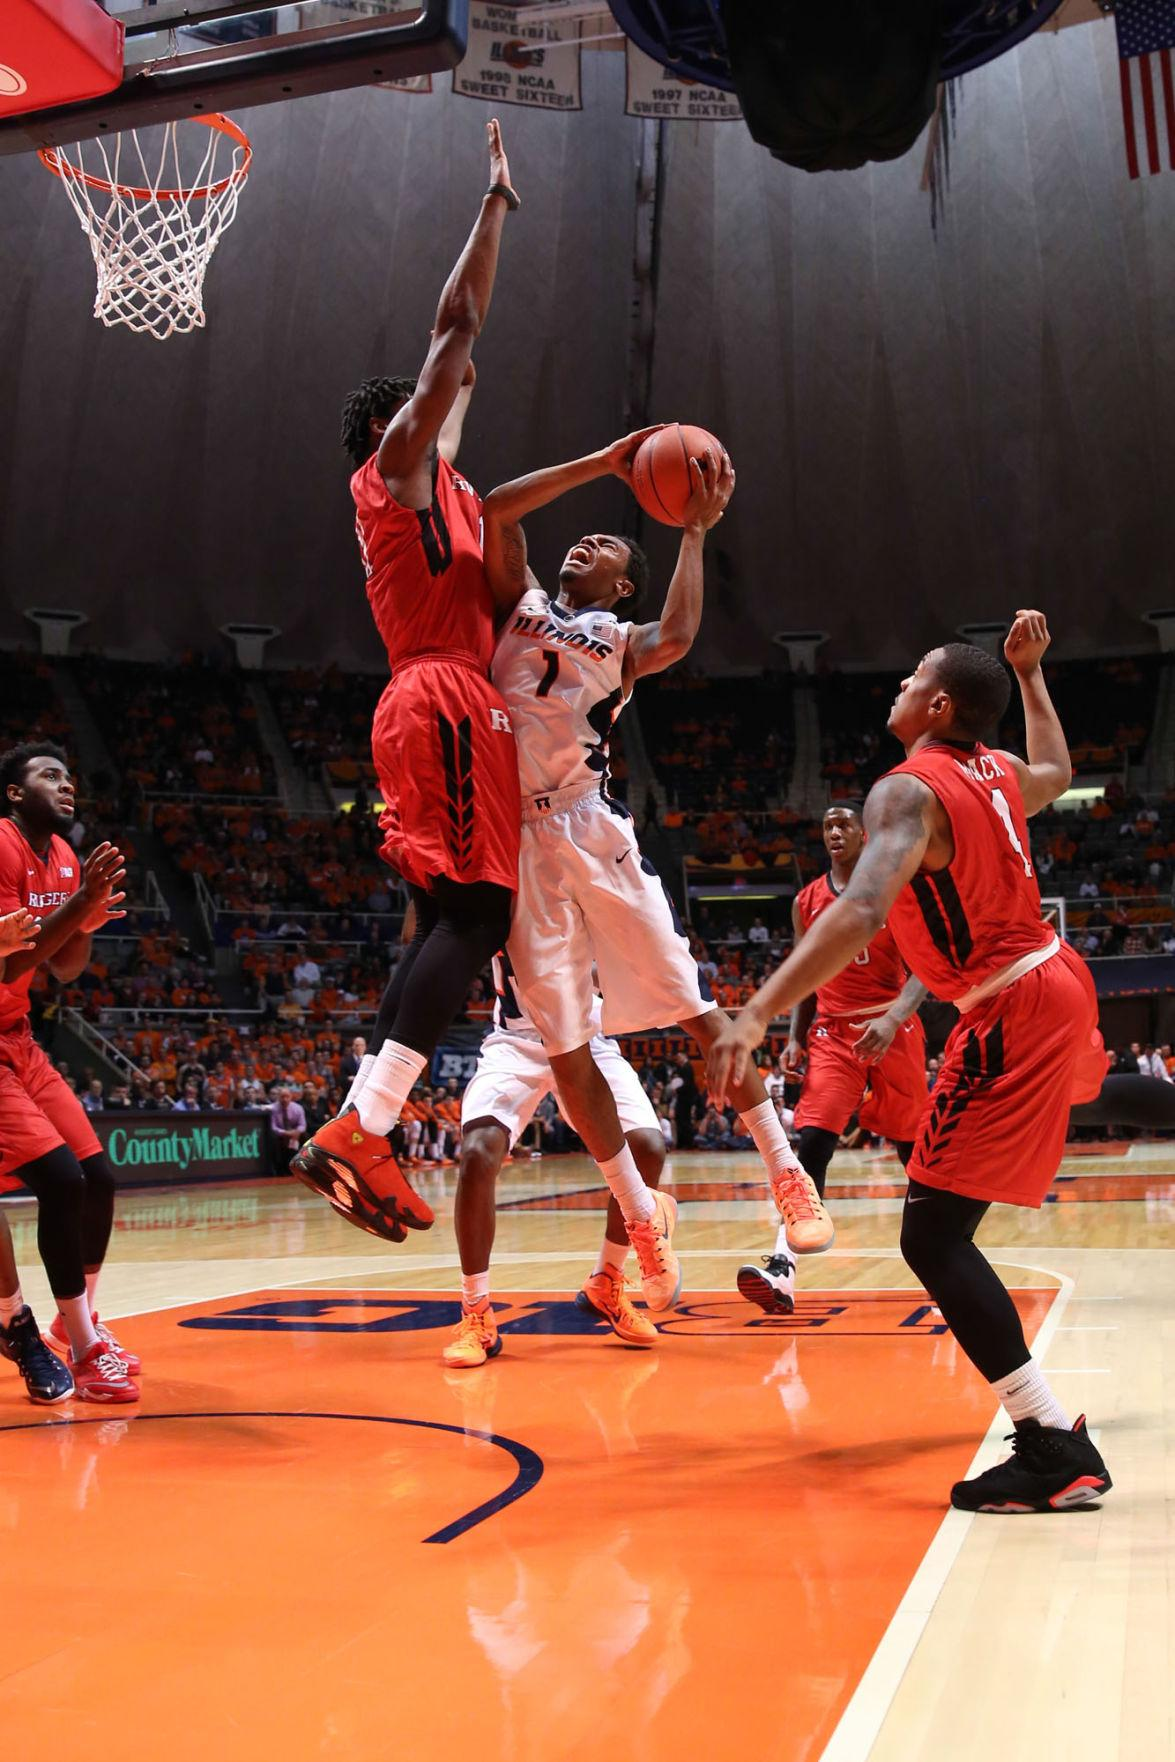 Illinois' Jaylon Tate goes up for a shot during the game against Rutgers at State Farm Center on Tuesday. Tate led the team with six assists.